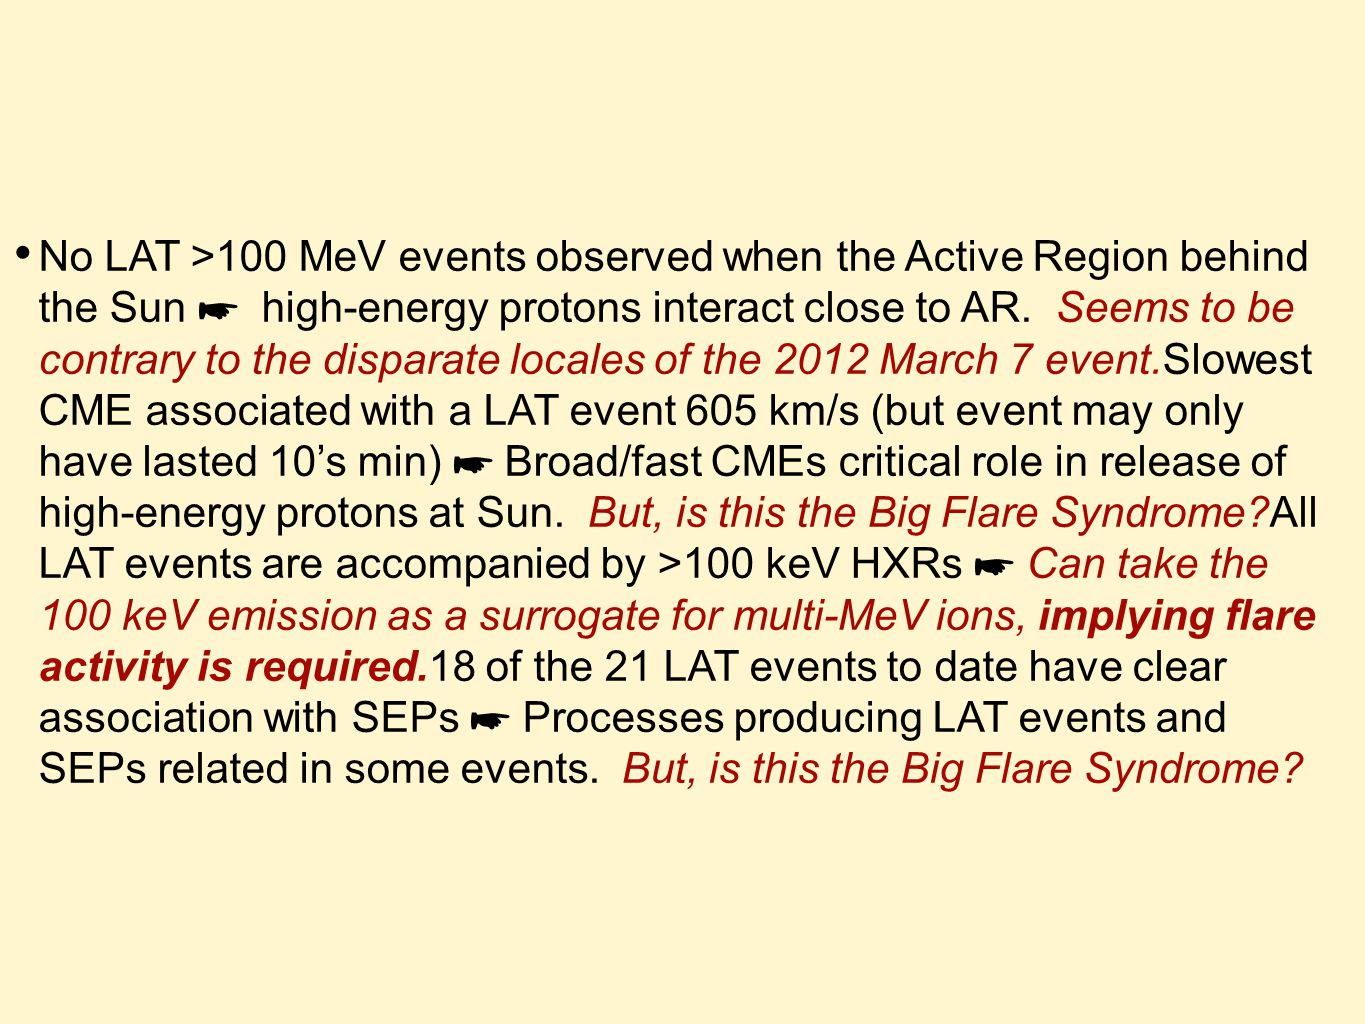 No LAT >100 MeV events observed when the Active Region behind the Sun ☛ high-energy protons interact close to AR.